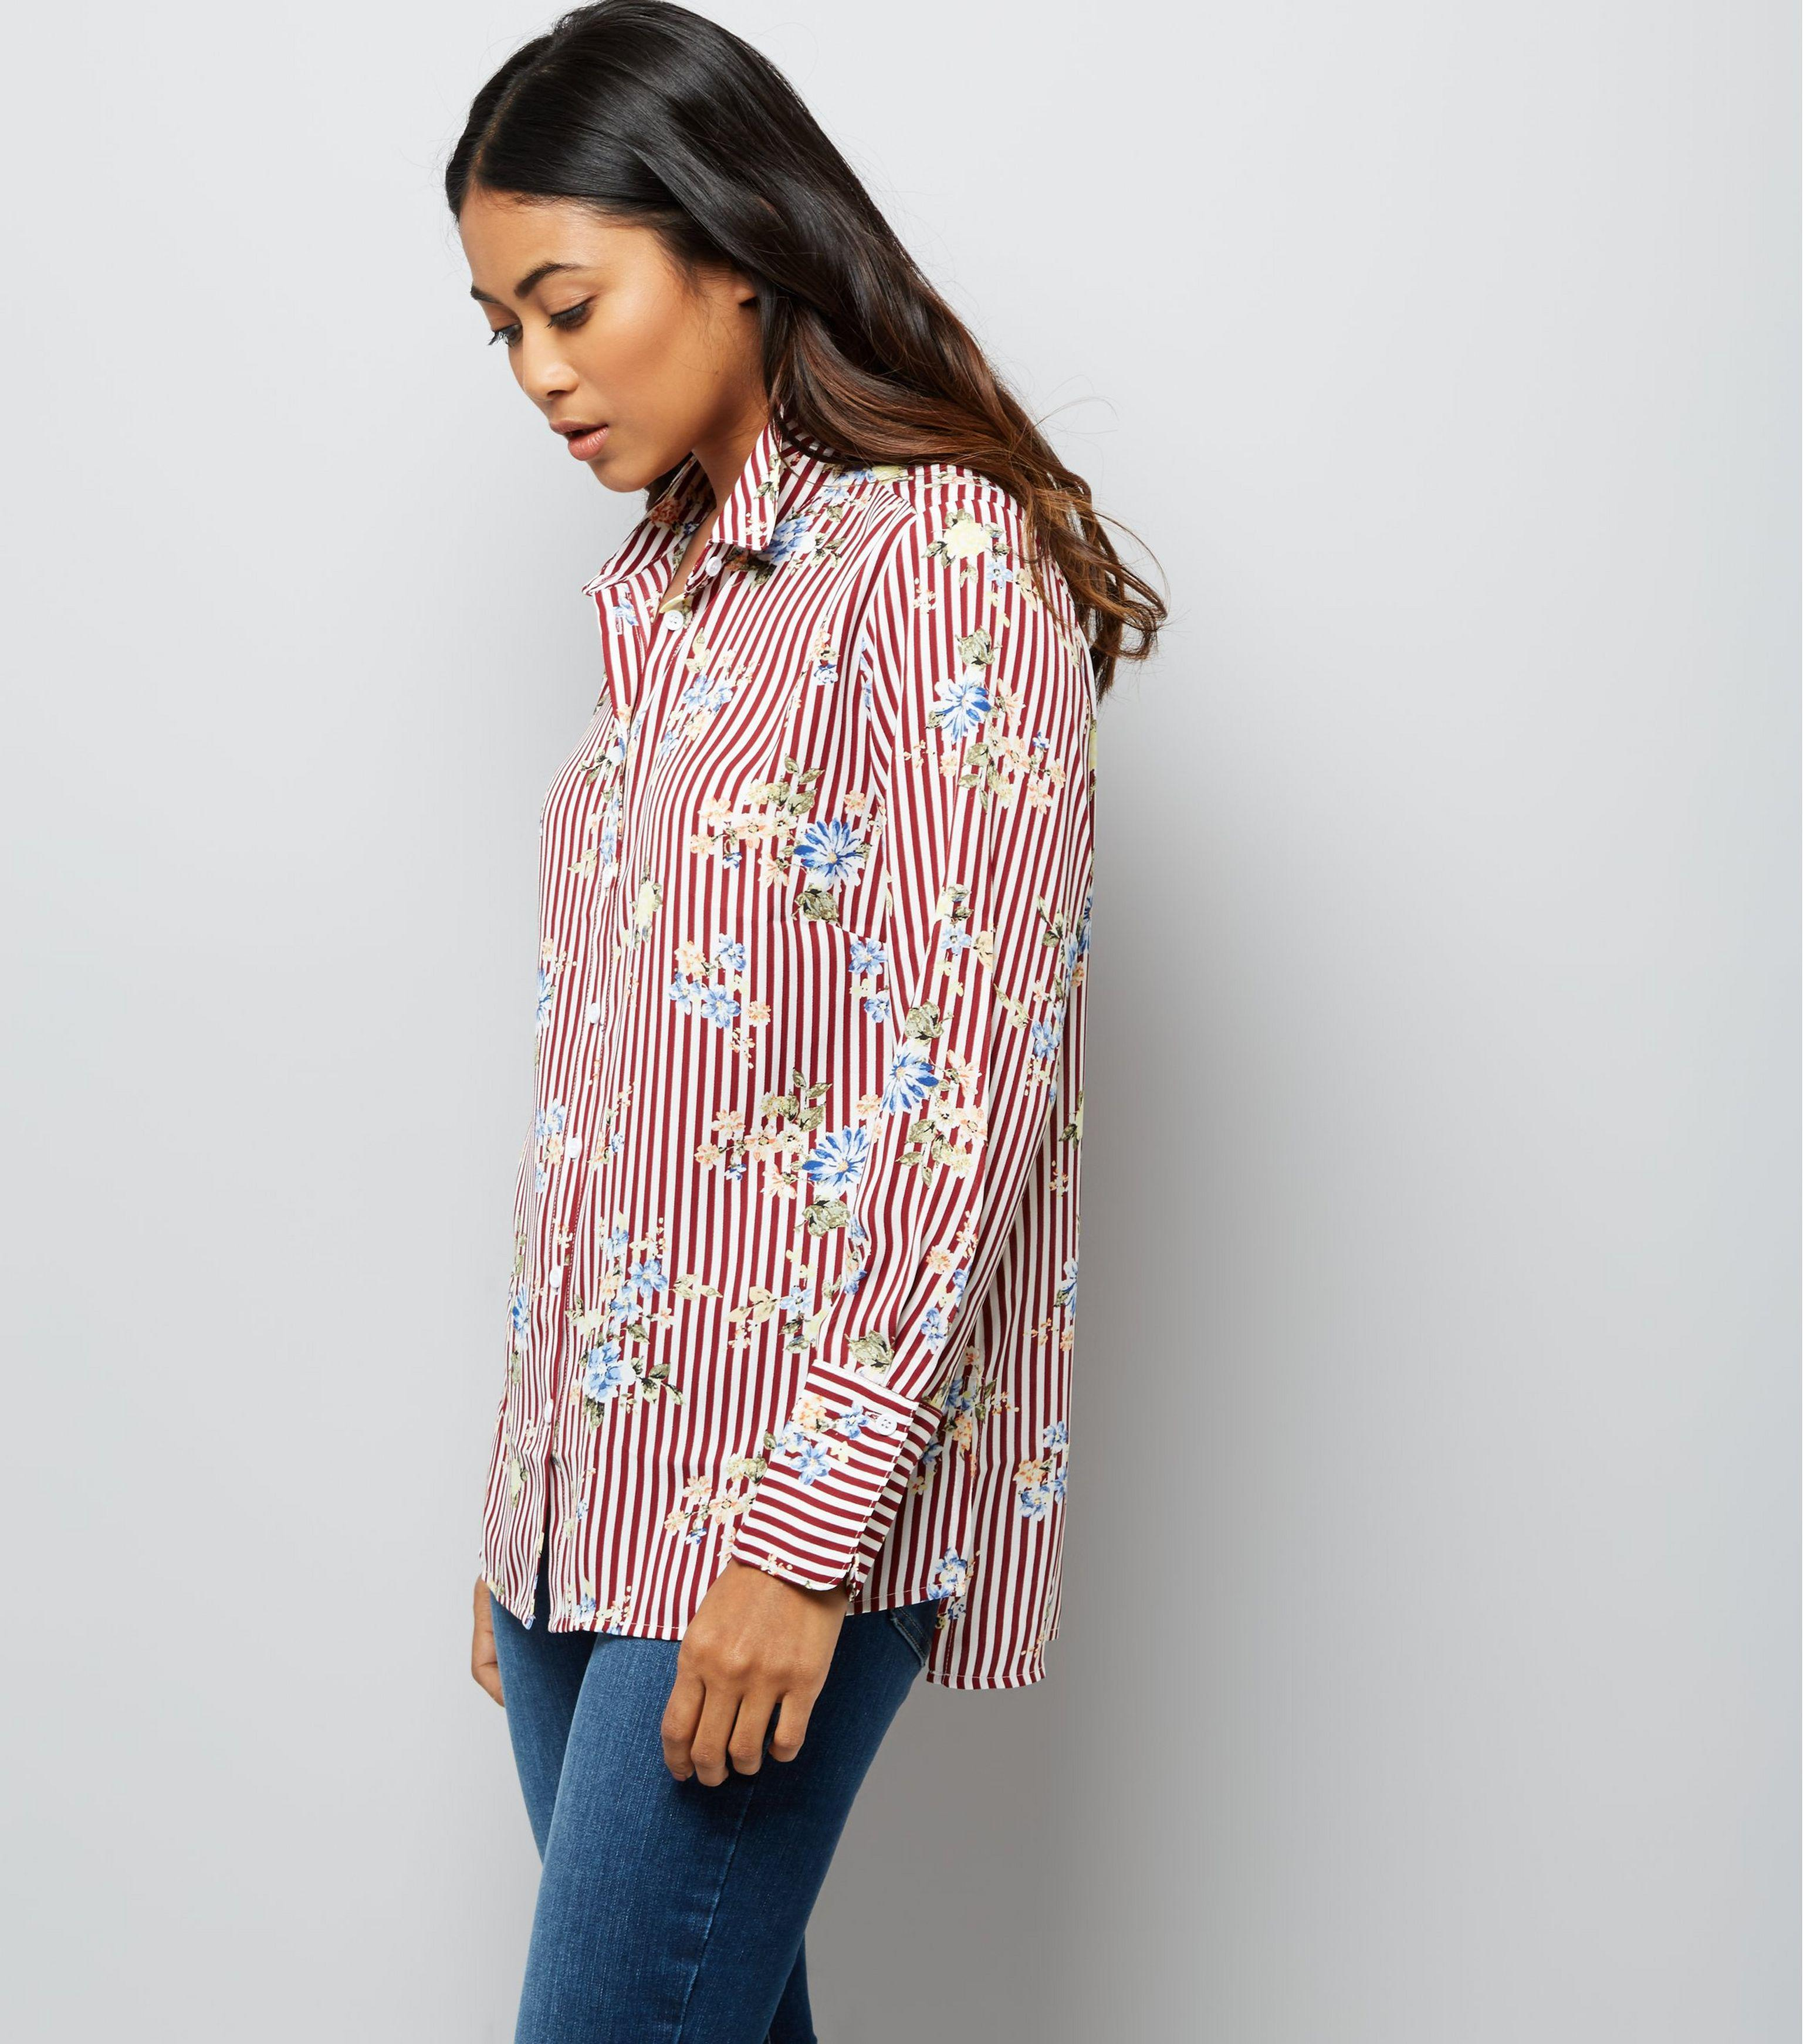 ea2dd062f46f7a New Look Petite Red Stripe Floral Print Shirt in Red - Lyst